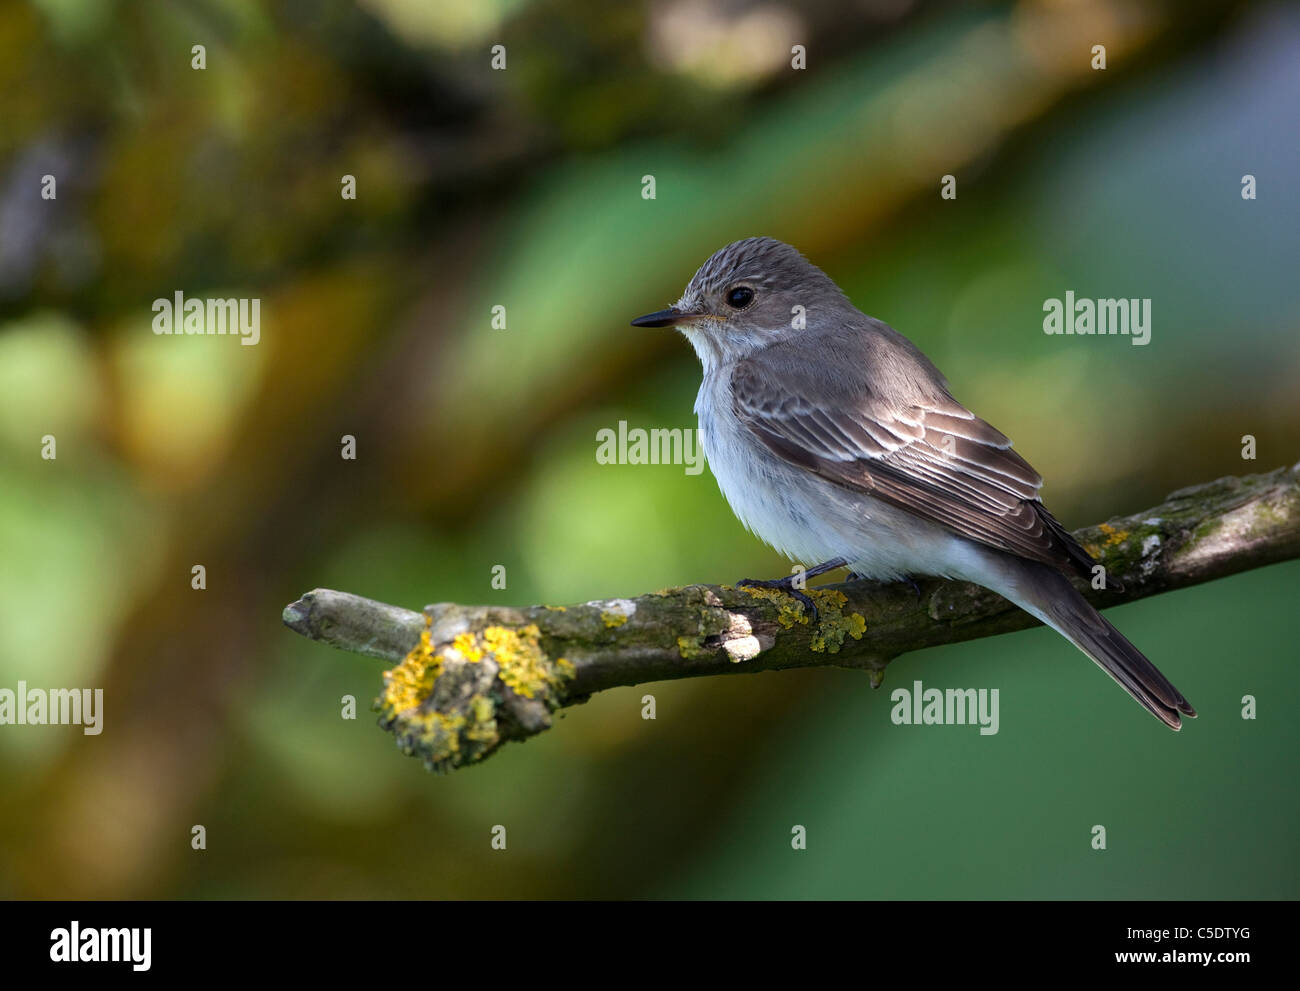 Close-up side view of spotted Flycatcher bird on branch against blurred background Stock Photo